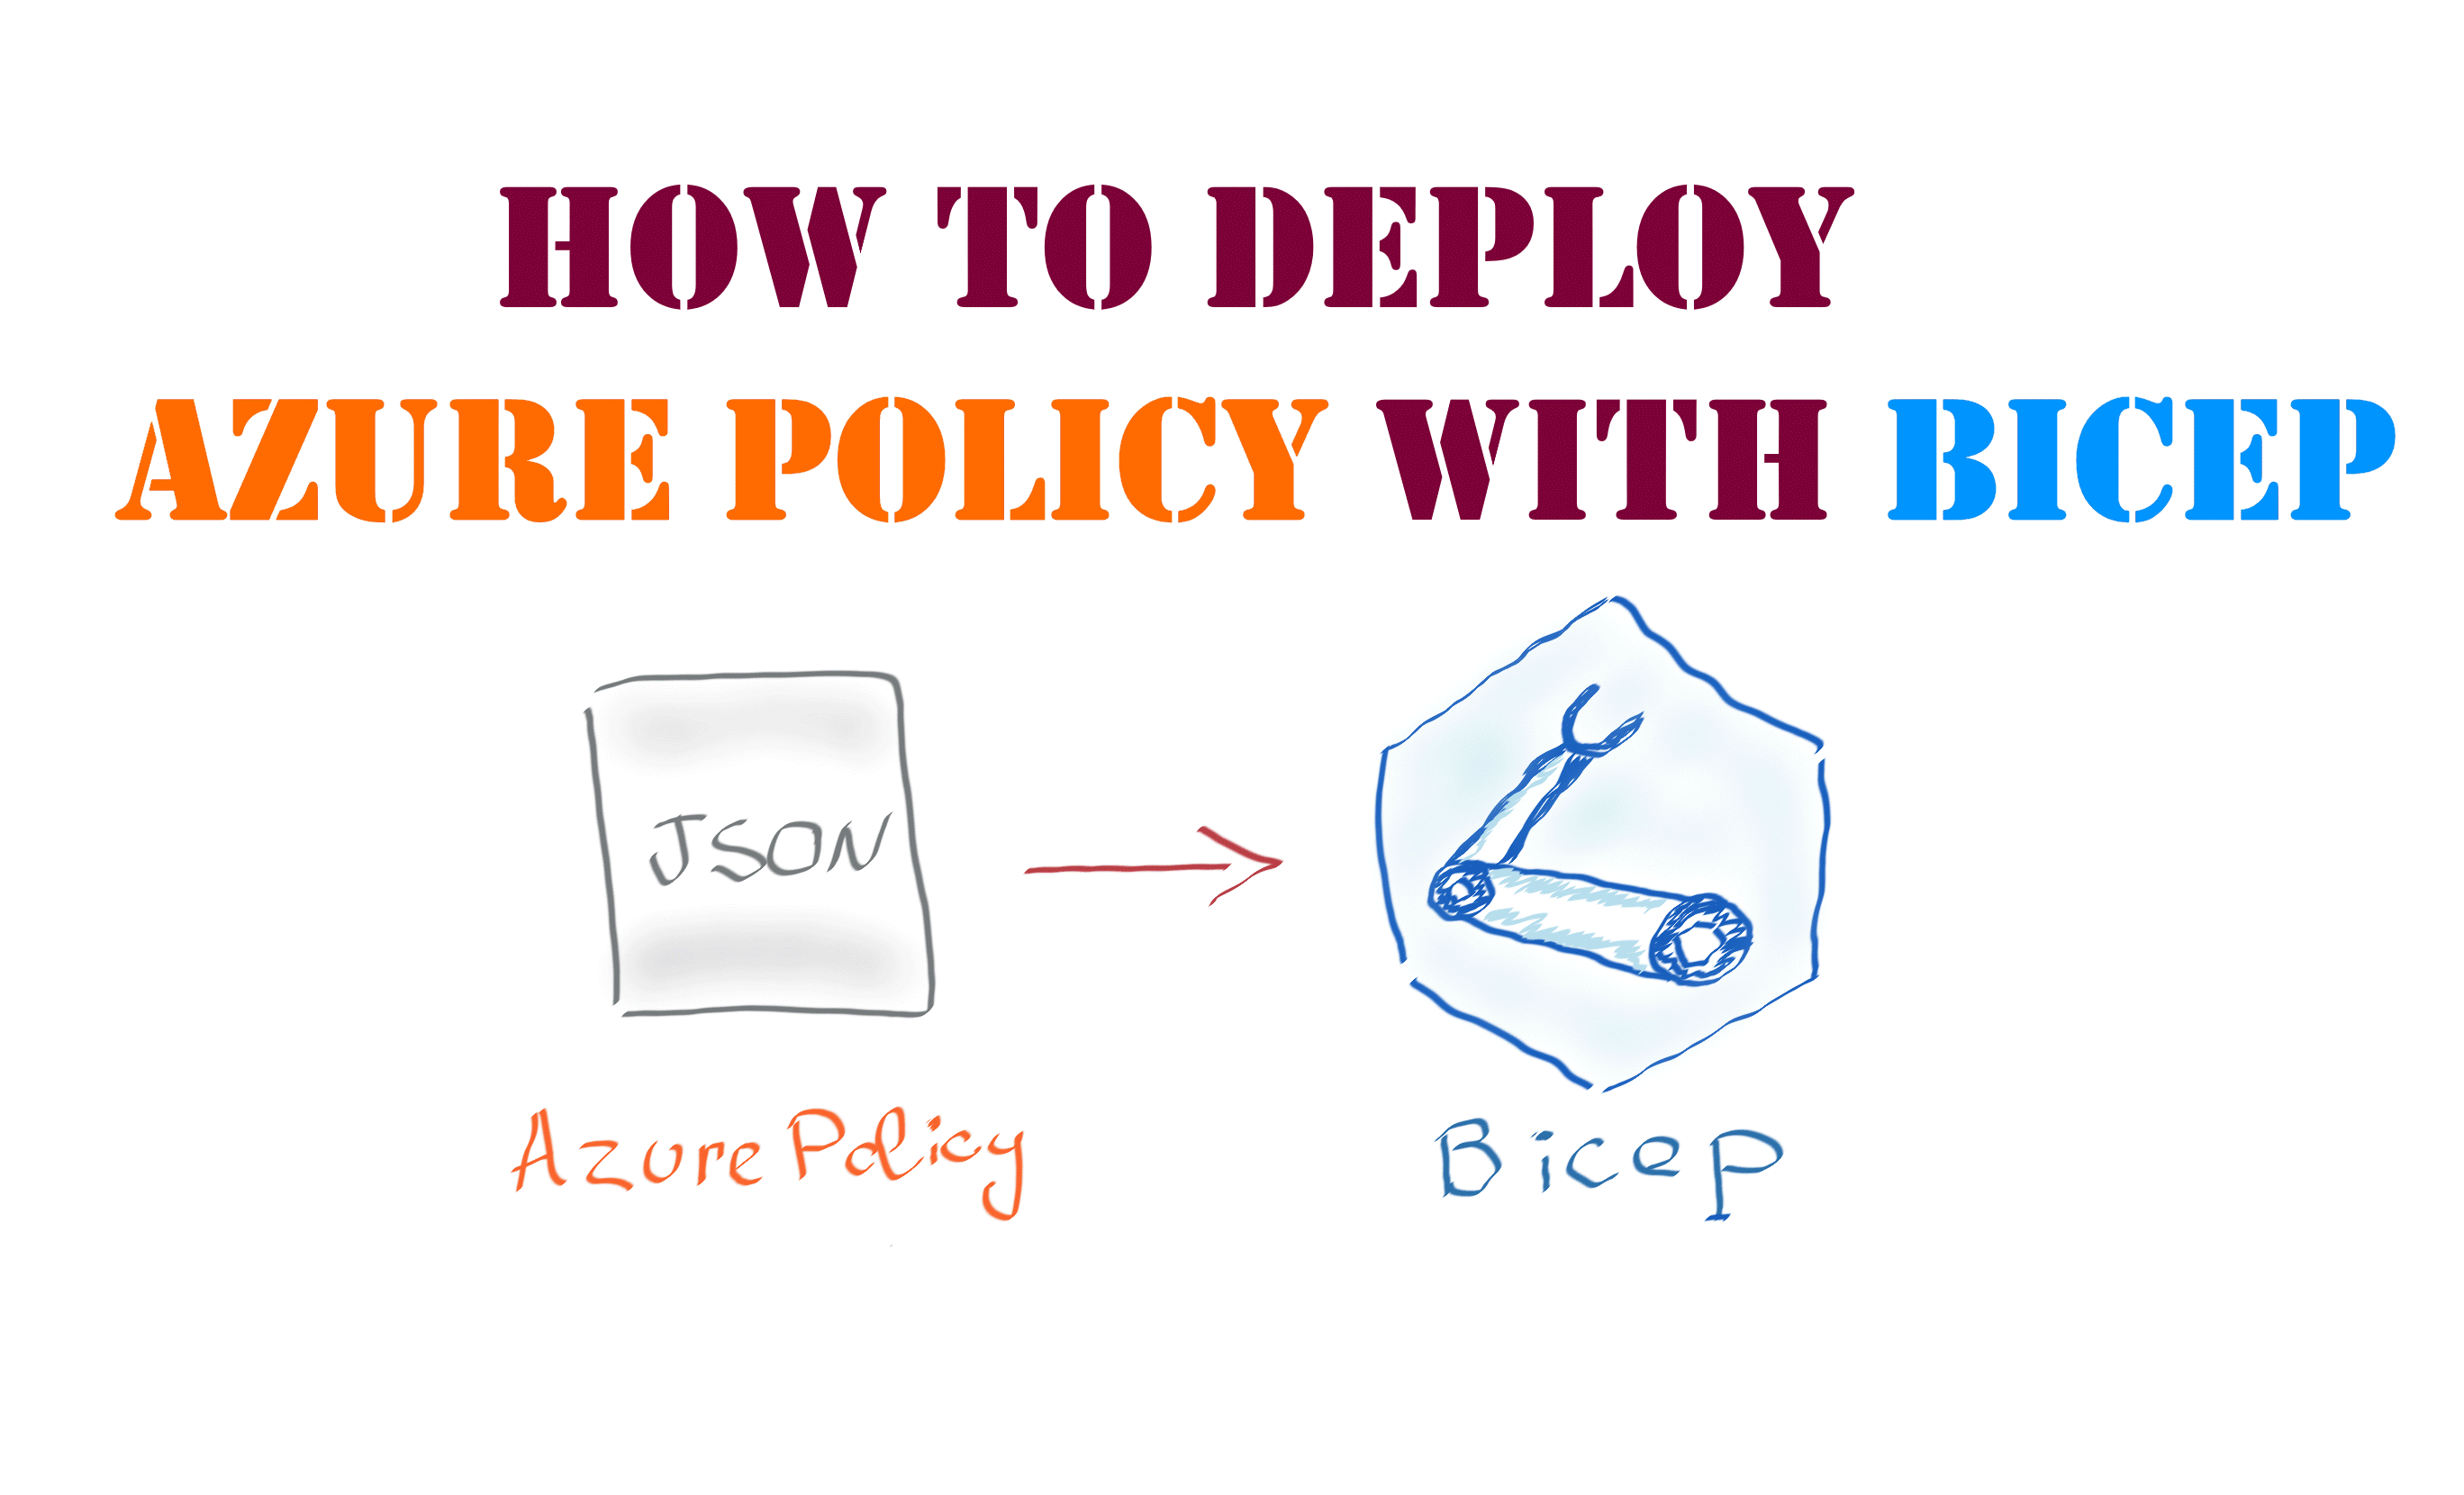 How to deploy Azure Policy with Bicep